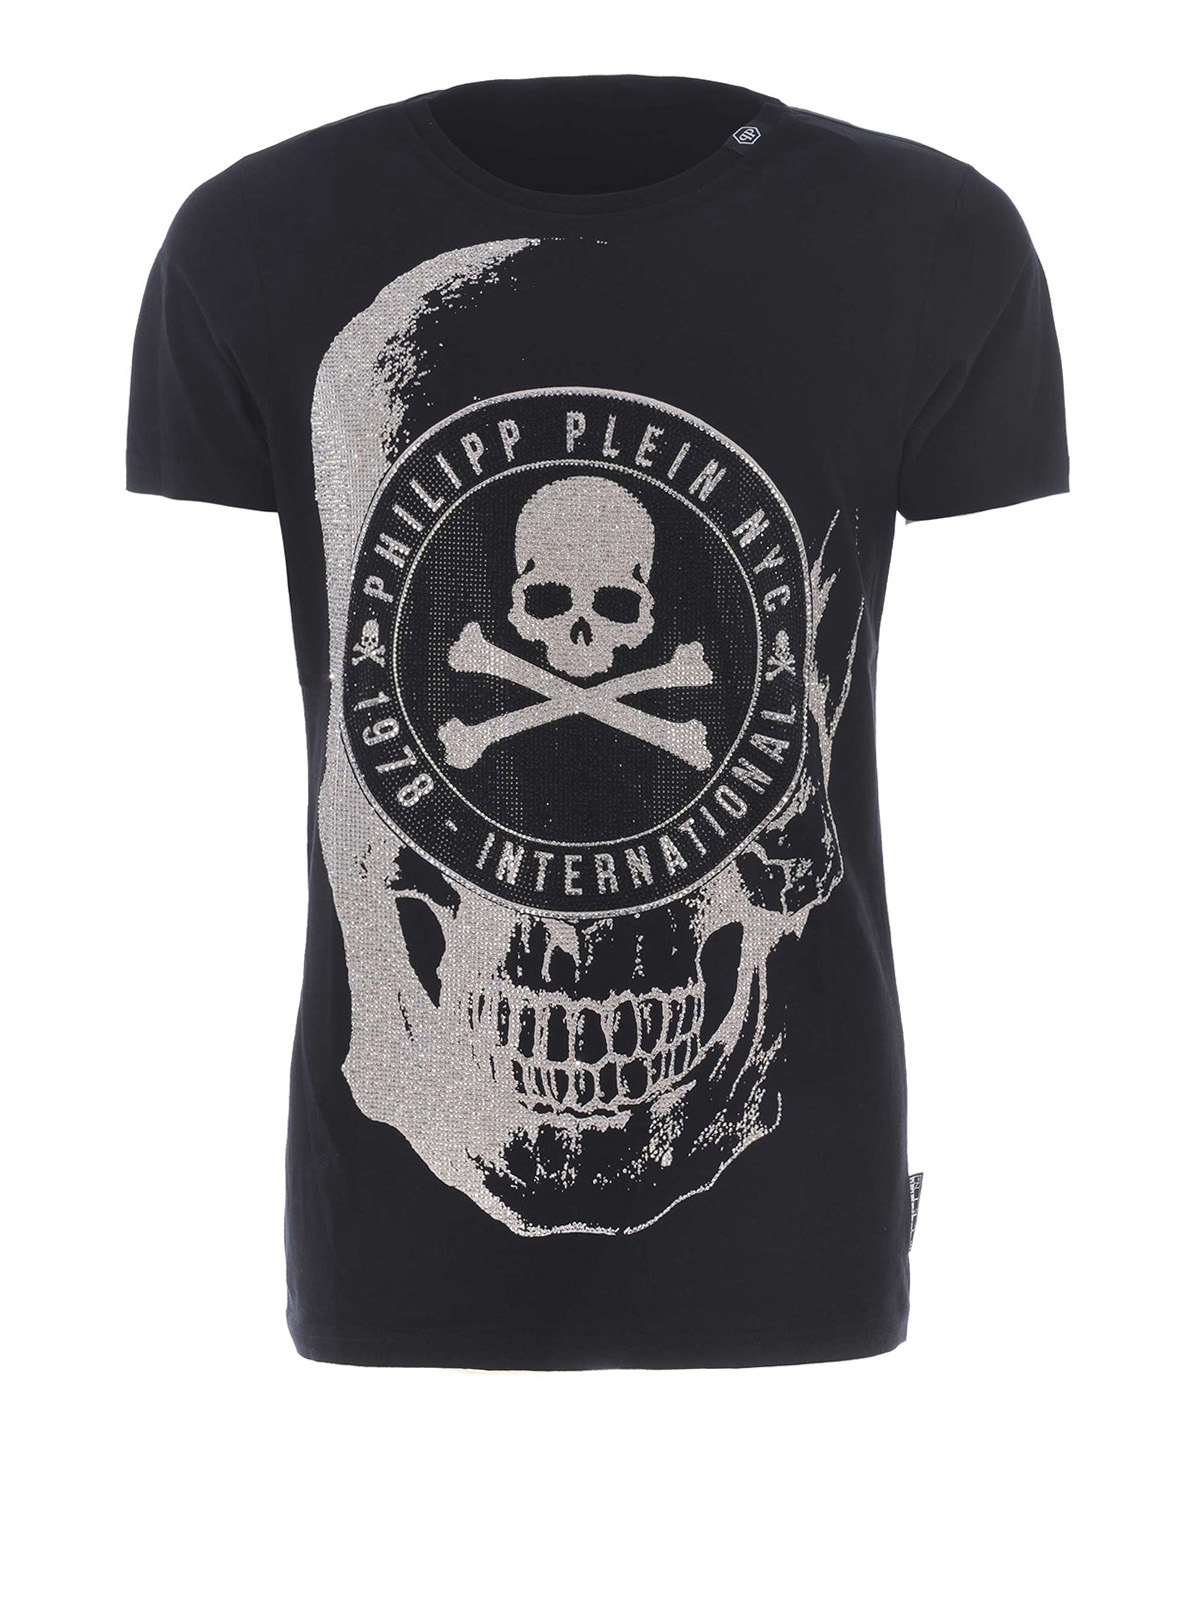 oisio embellished skull t shirt by philipp plein t shirts ikrix. Black Bedroom Furniture Sets. Home Design Ideas